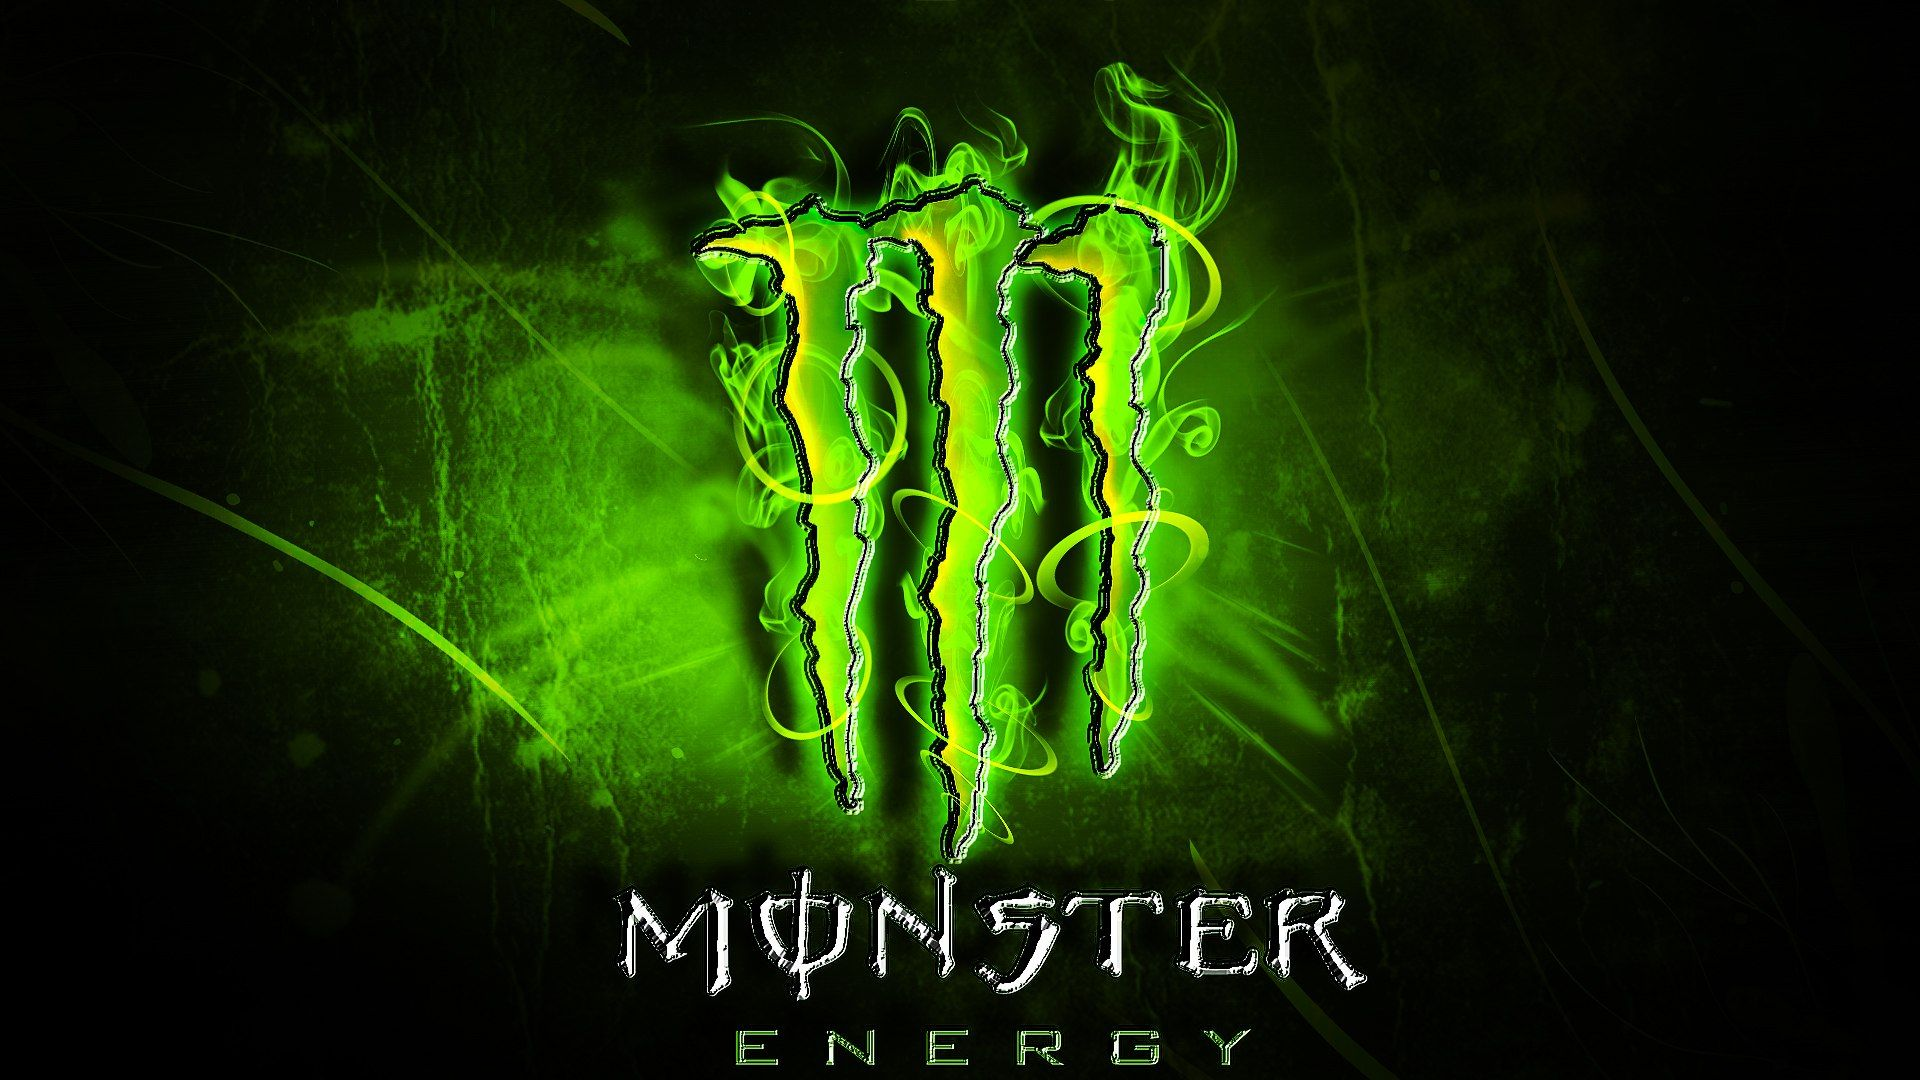 Monster wallpaper widescreen amazing wallpapers - Amazing wallpapers for boys ...